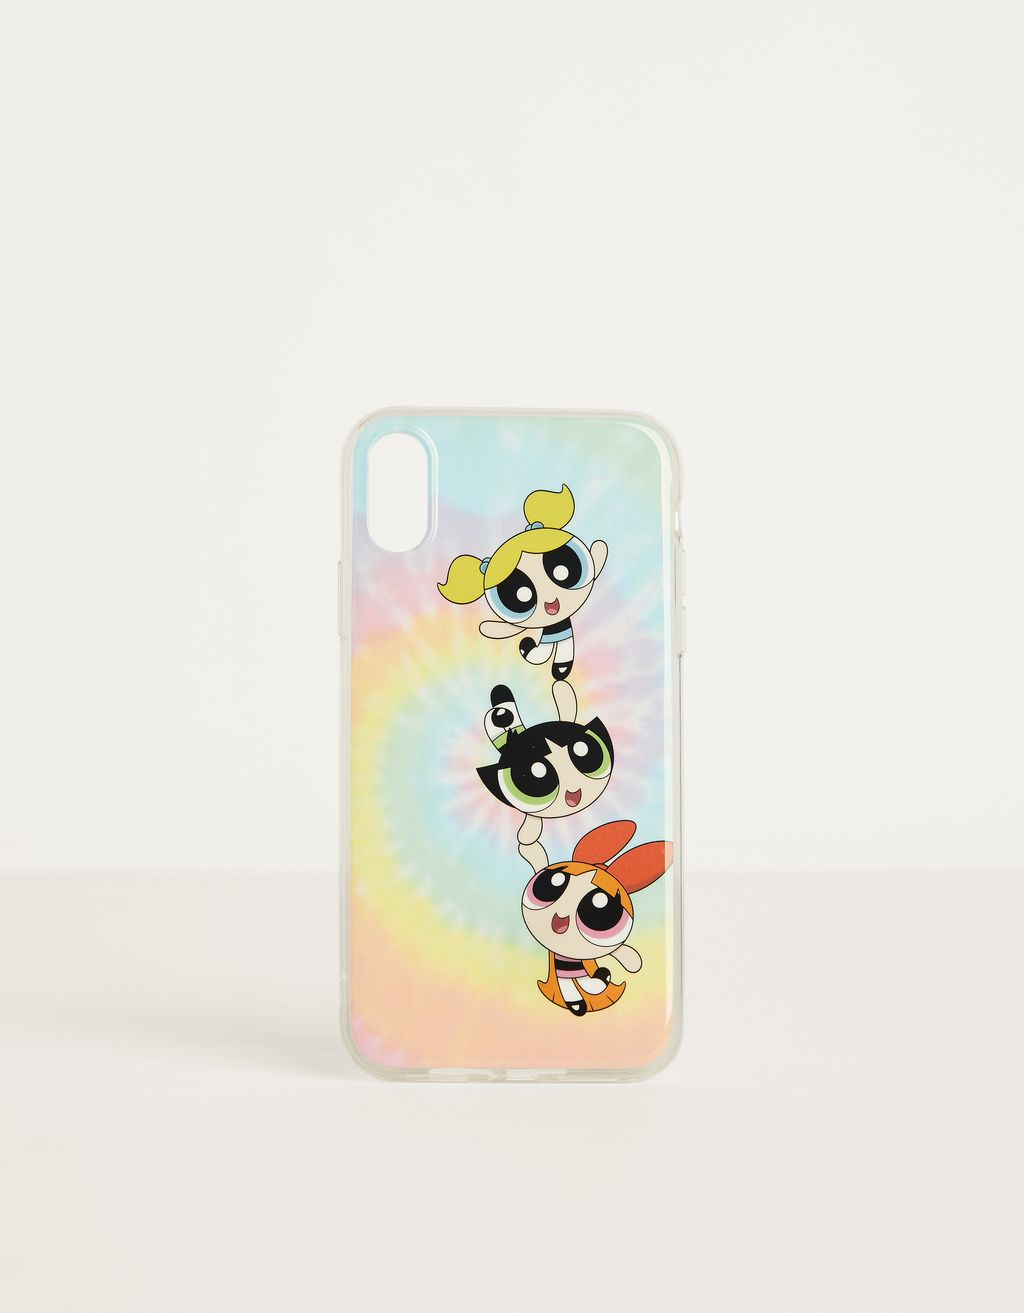 iPhone XR vāciņš 'The Powerpuff Girls x Bershka'